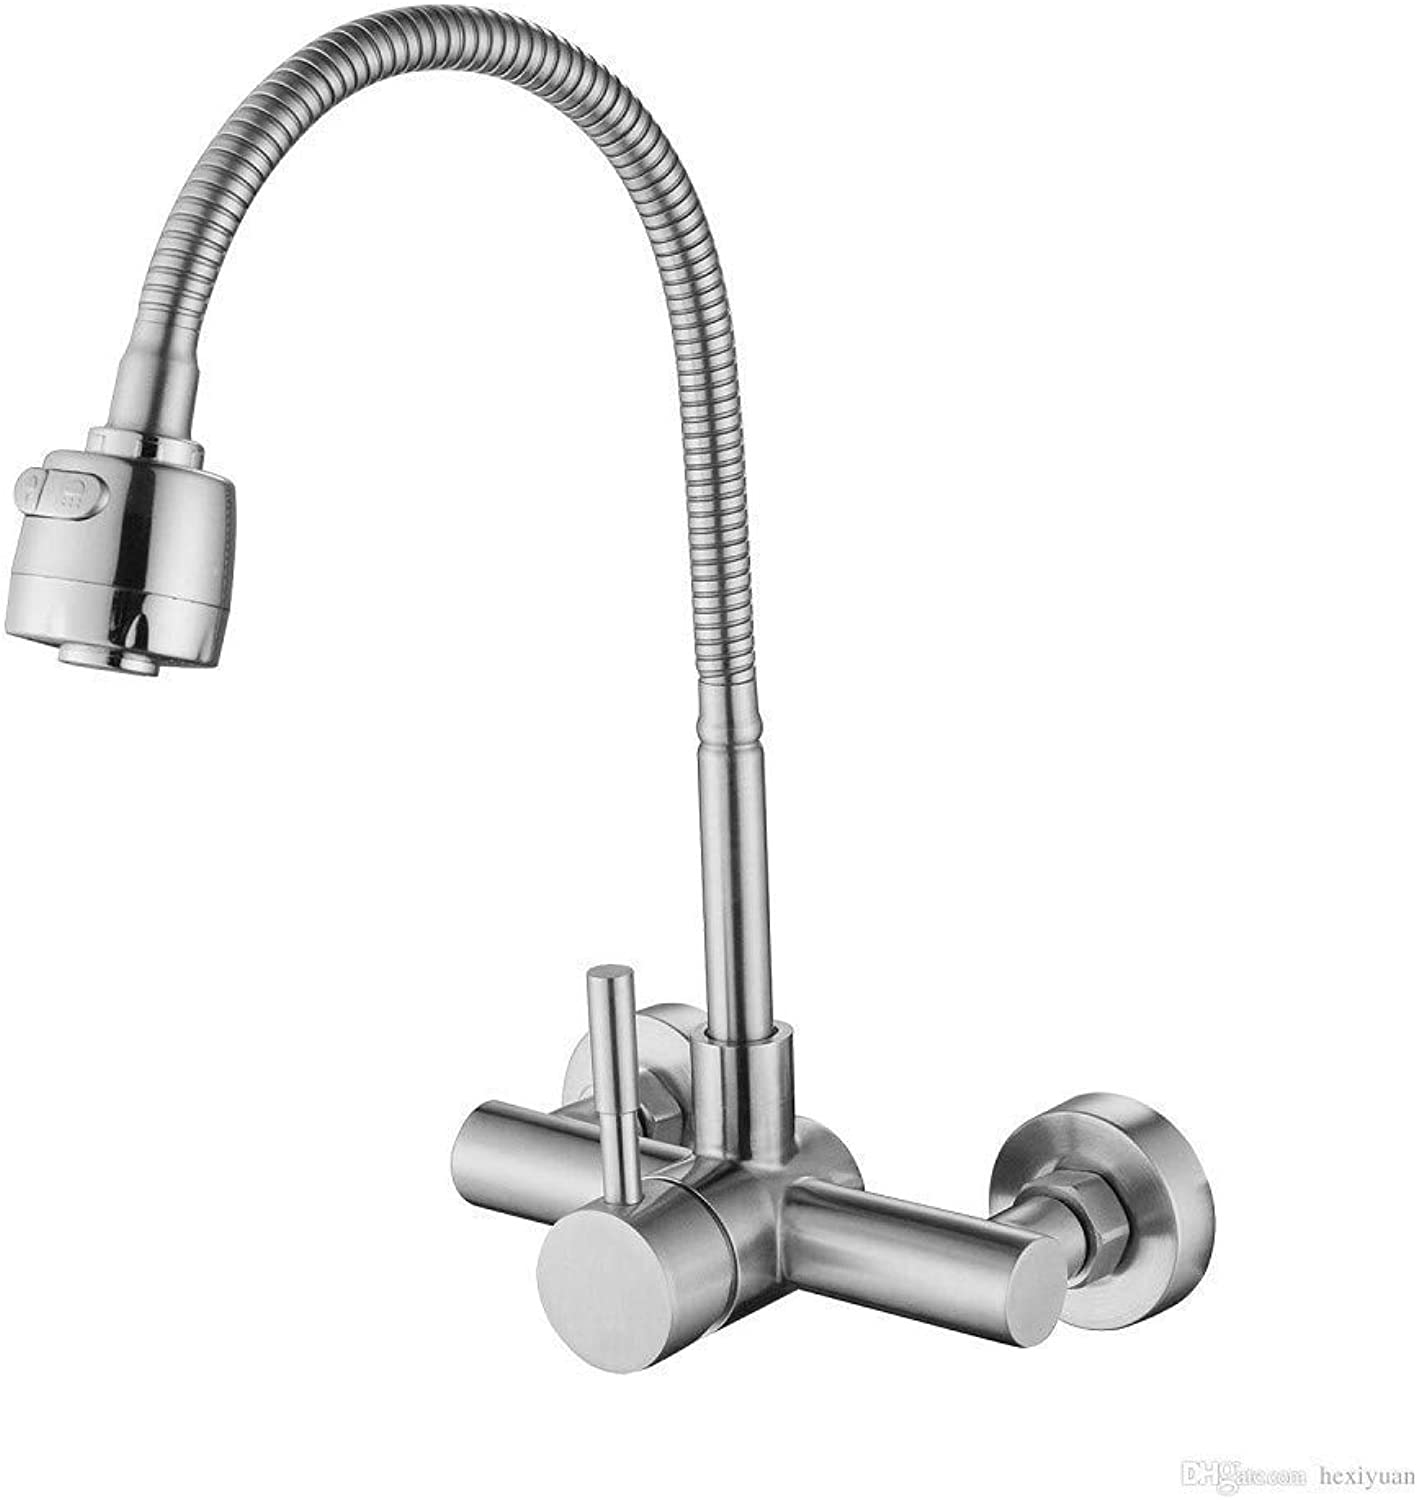 Oudan Kitchen Faucet 304 Stainless Steel in The Hot and Cold Faucet of The Bathtub Wall (color   -, Size   -)